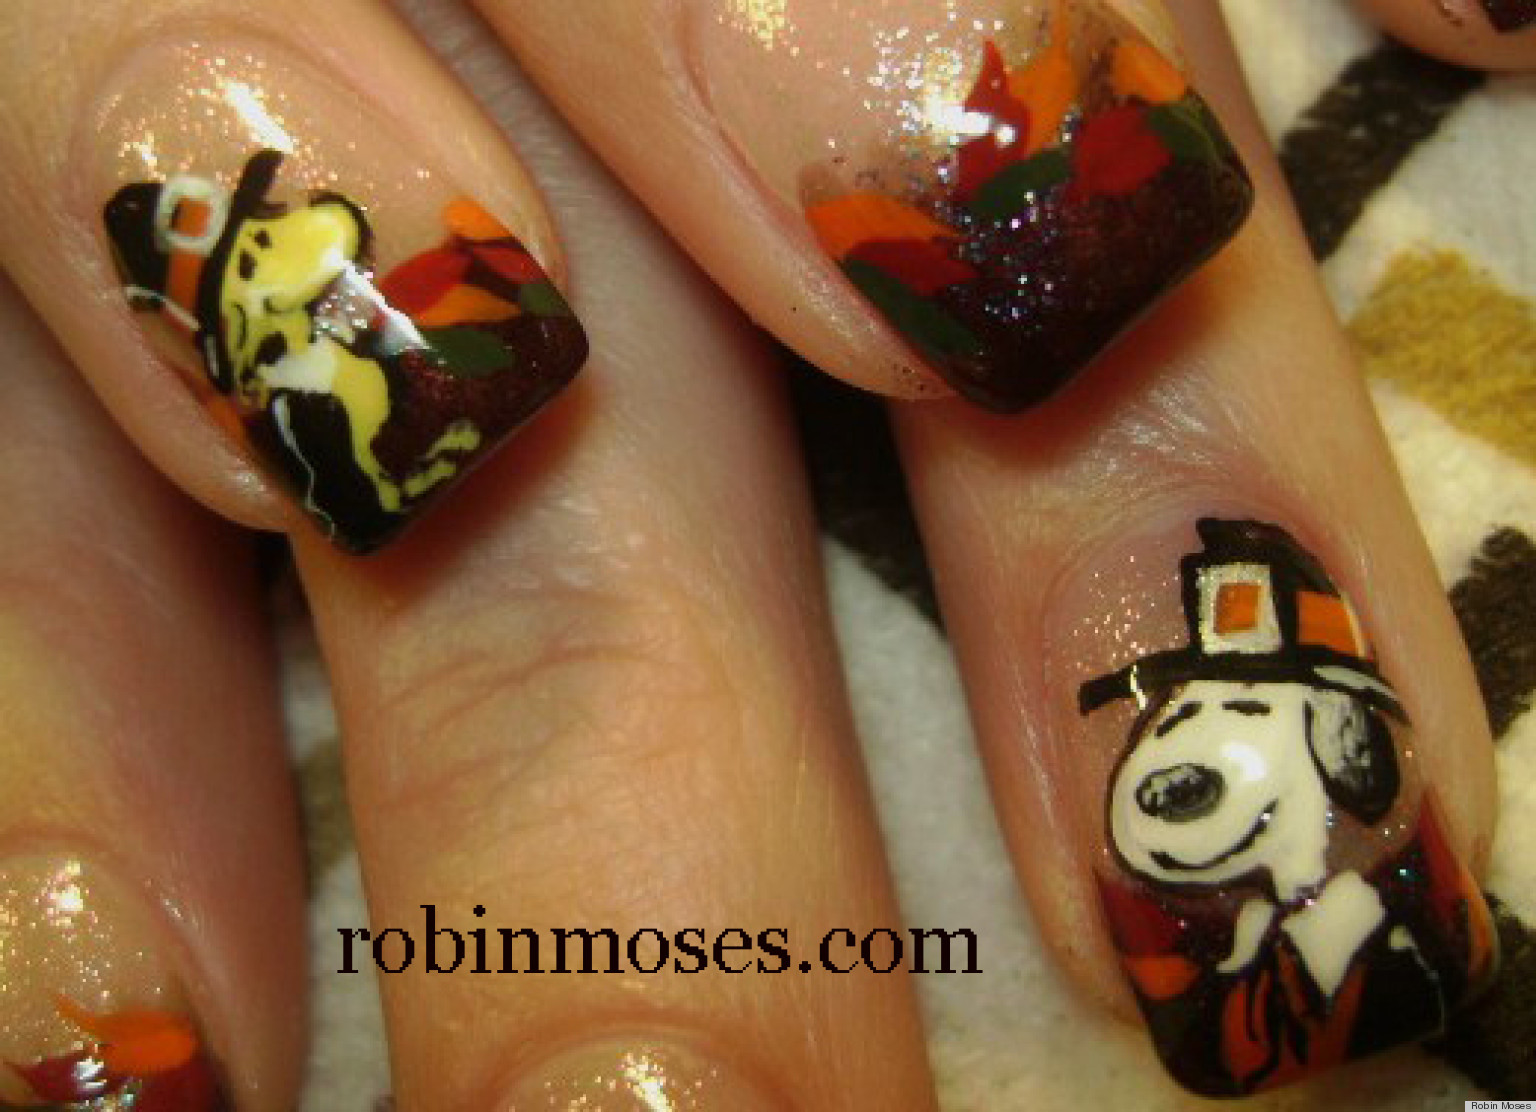 Unusual What Does Nail Fungus Look Like Symptoms Thin Shiny Gold Nail Polish Flat How To Keep Nail Polish From Chipping How Do You Do Nail Art Young Nail Polish Holder FreshTips For Water Marble Nail Art DIY Nail Art: Snoopy And Woodstock Thanksgiving Manicure (VIDEO ..